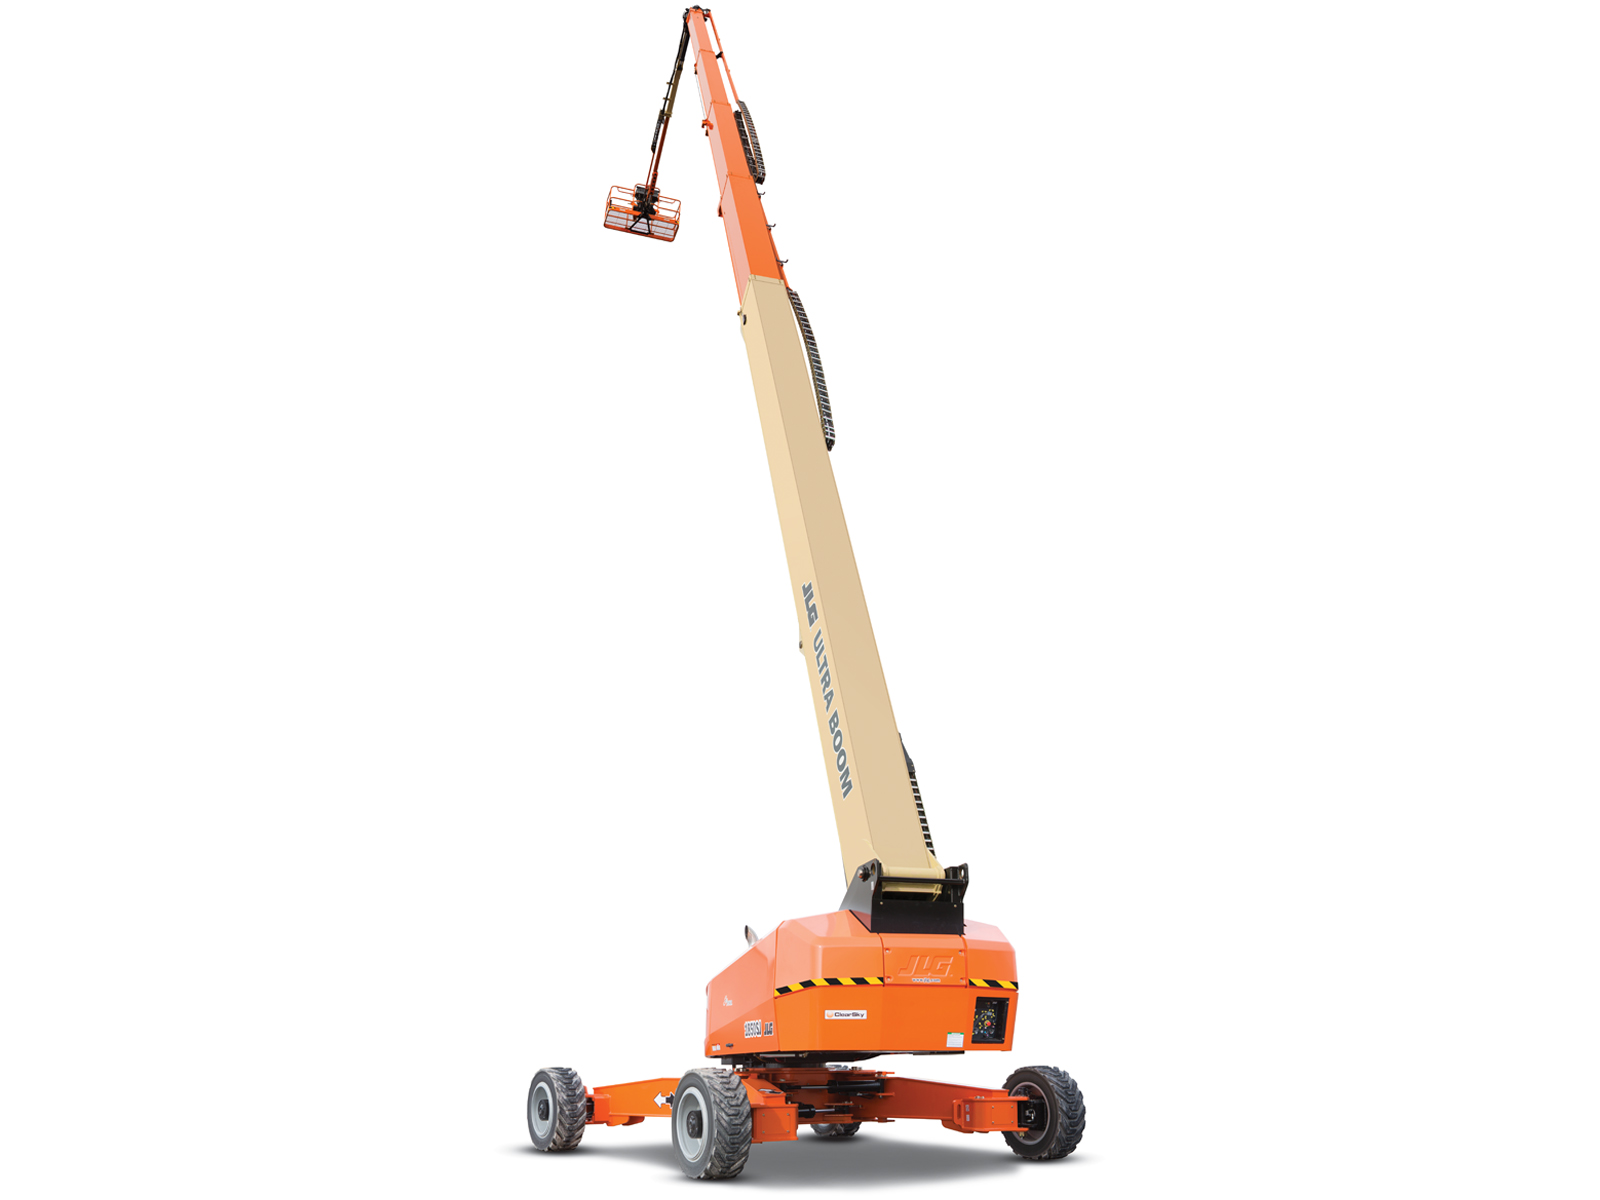 1850sj gallery silo jpg?w=100 1850sj telescopic boom lift jlg  at crackthecode.co